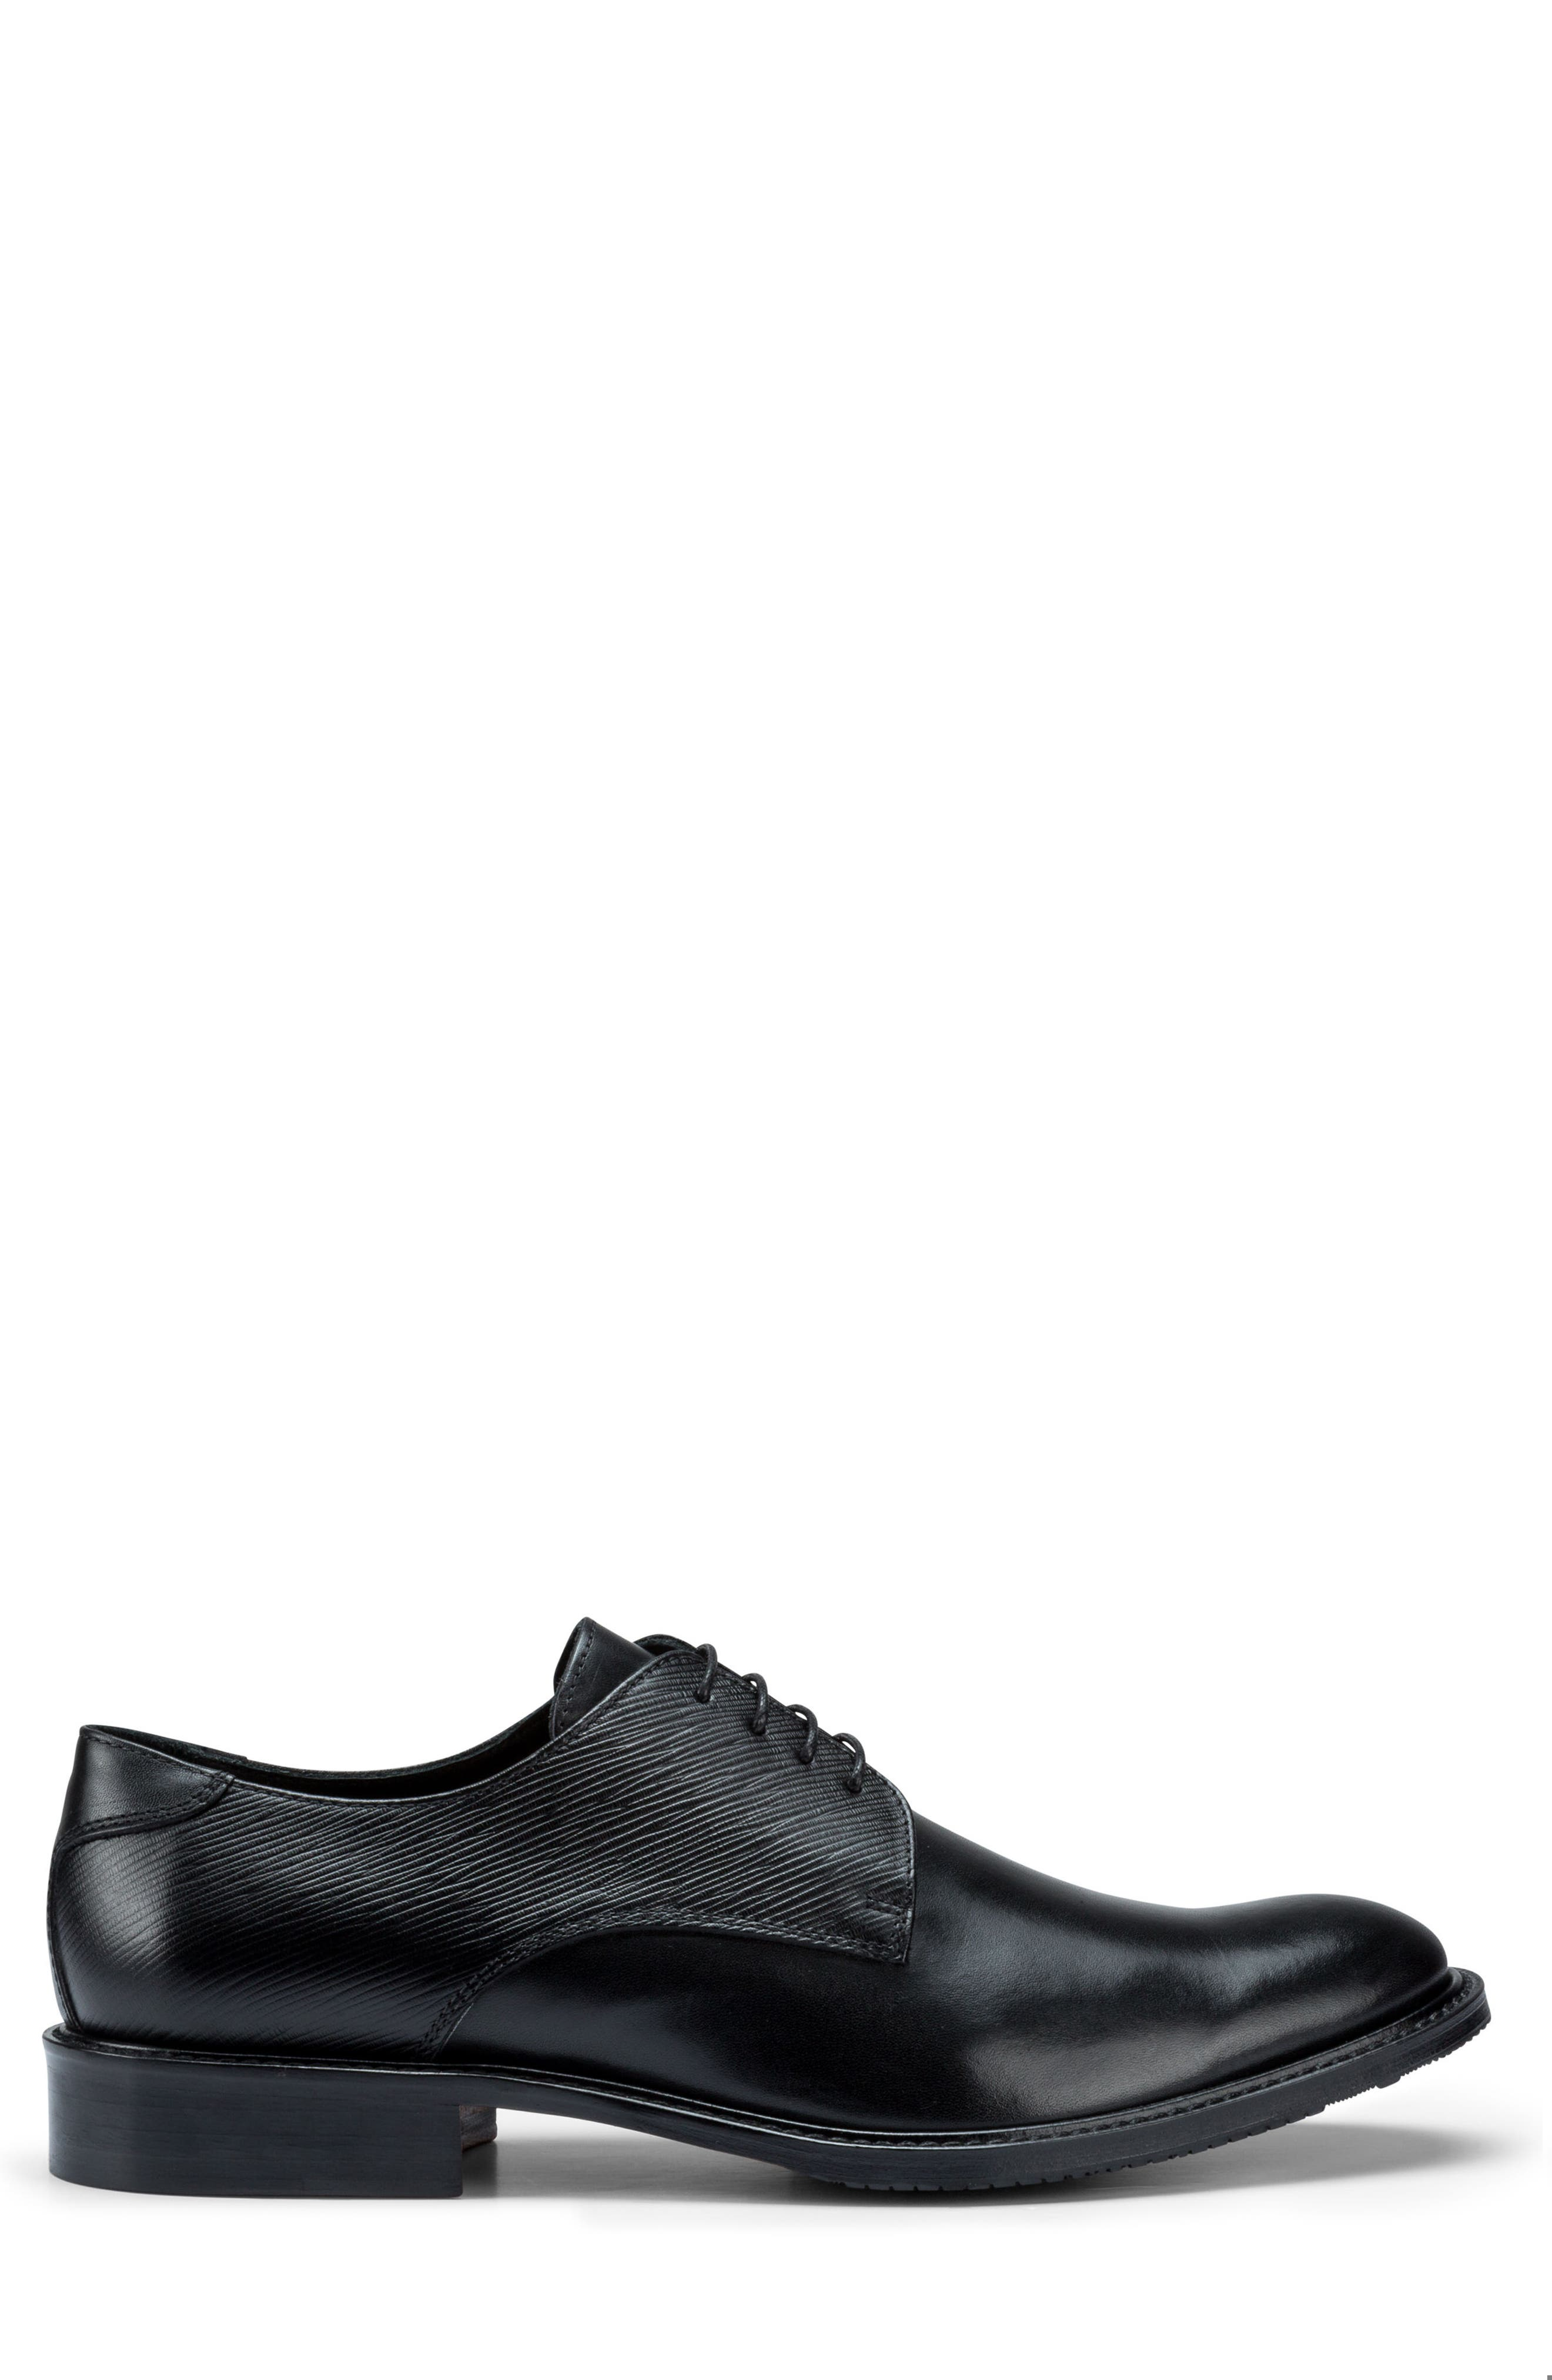 Sorrento Plain Toe Derby,                             Alternate thumbnail 3, color,                             Nero Leather